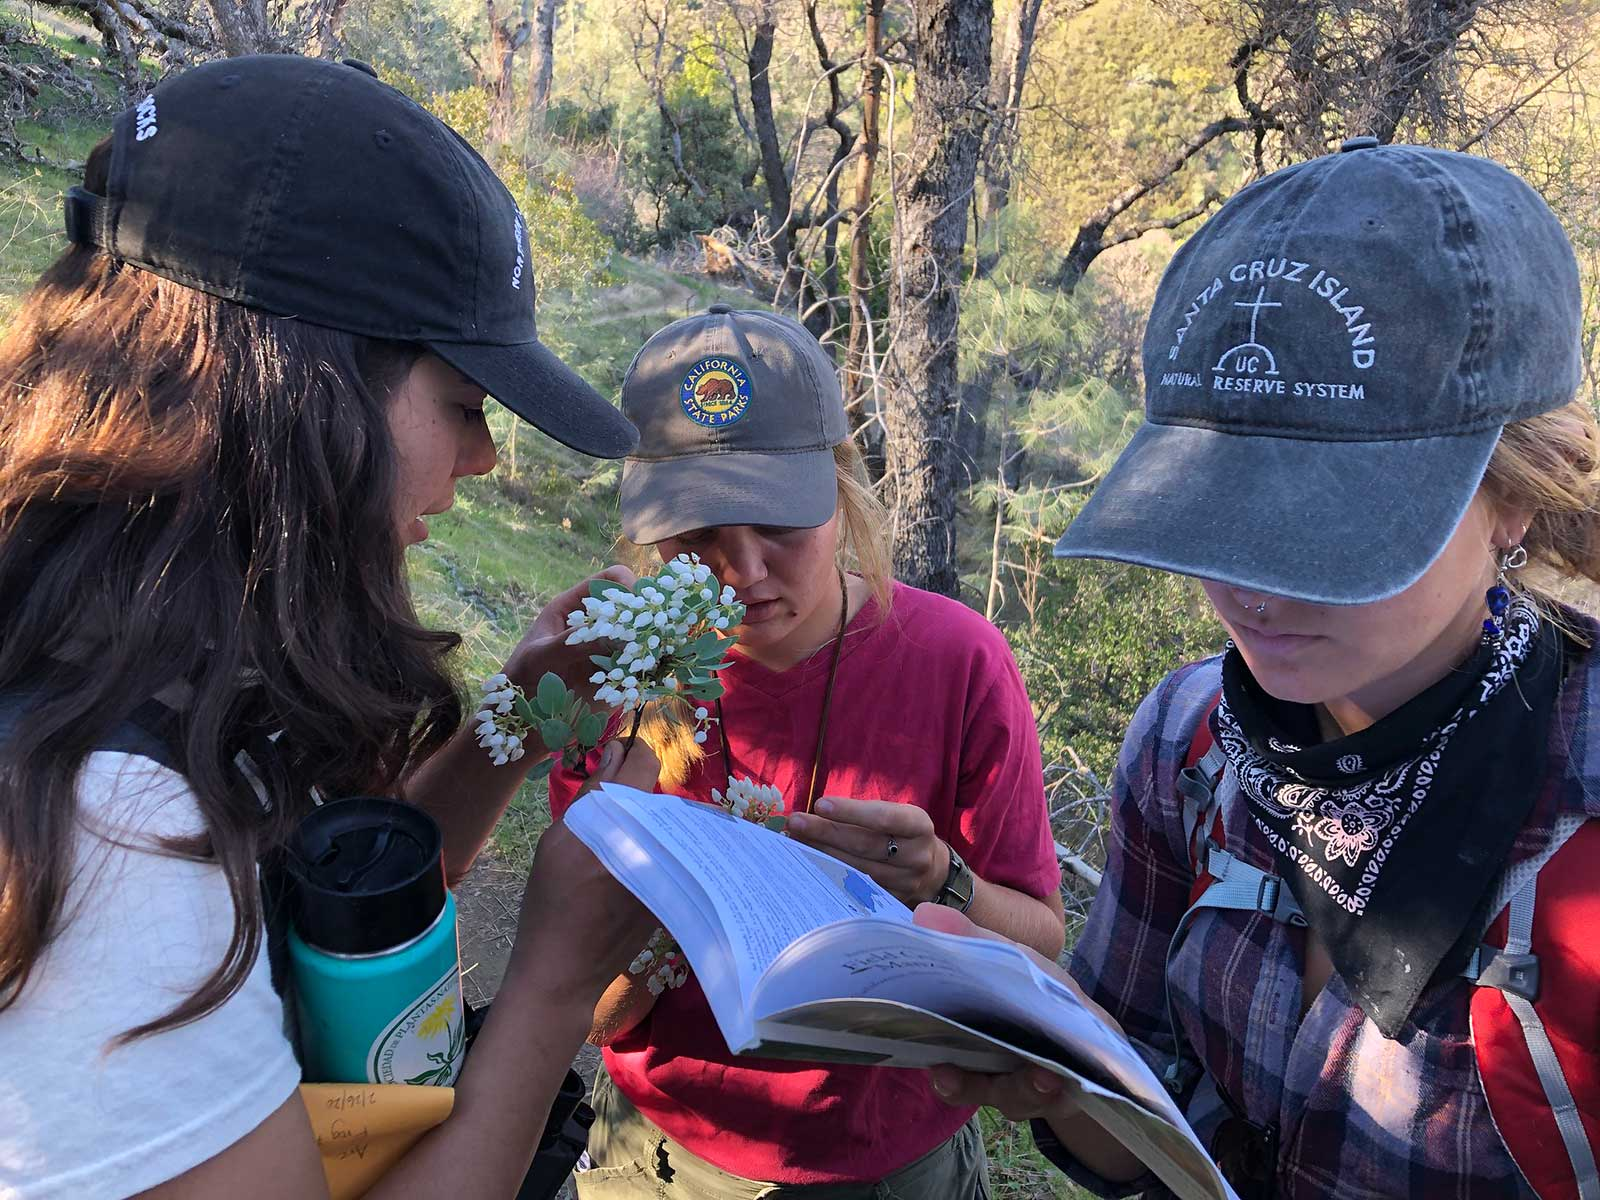 Students Camryn, Tori, and Lucy key out Manzanitas at Henry Coe State Park. Practical field experience and field identification are important skills taught in the course. Photo credit: Brett Hall, courtesy of University of California Santa Cruz Arboretum.